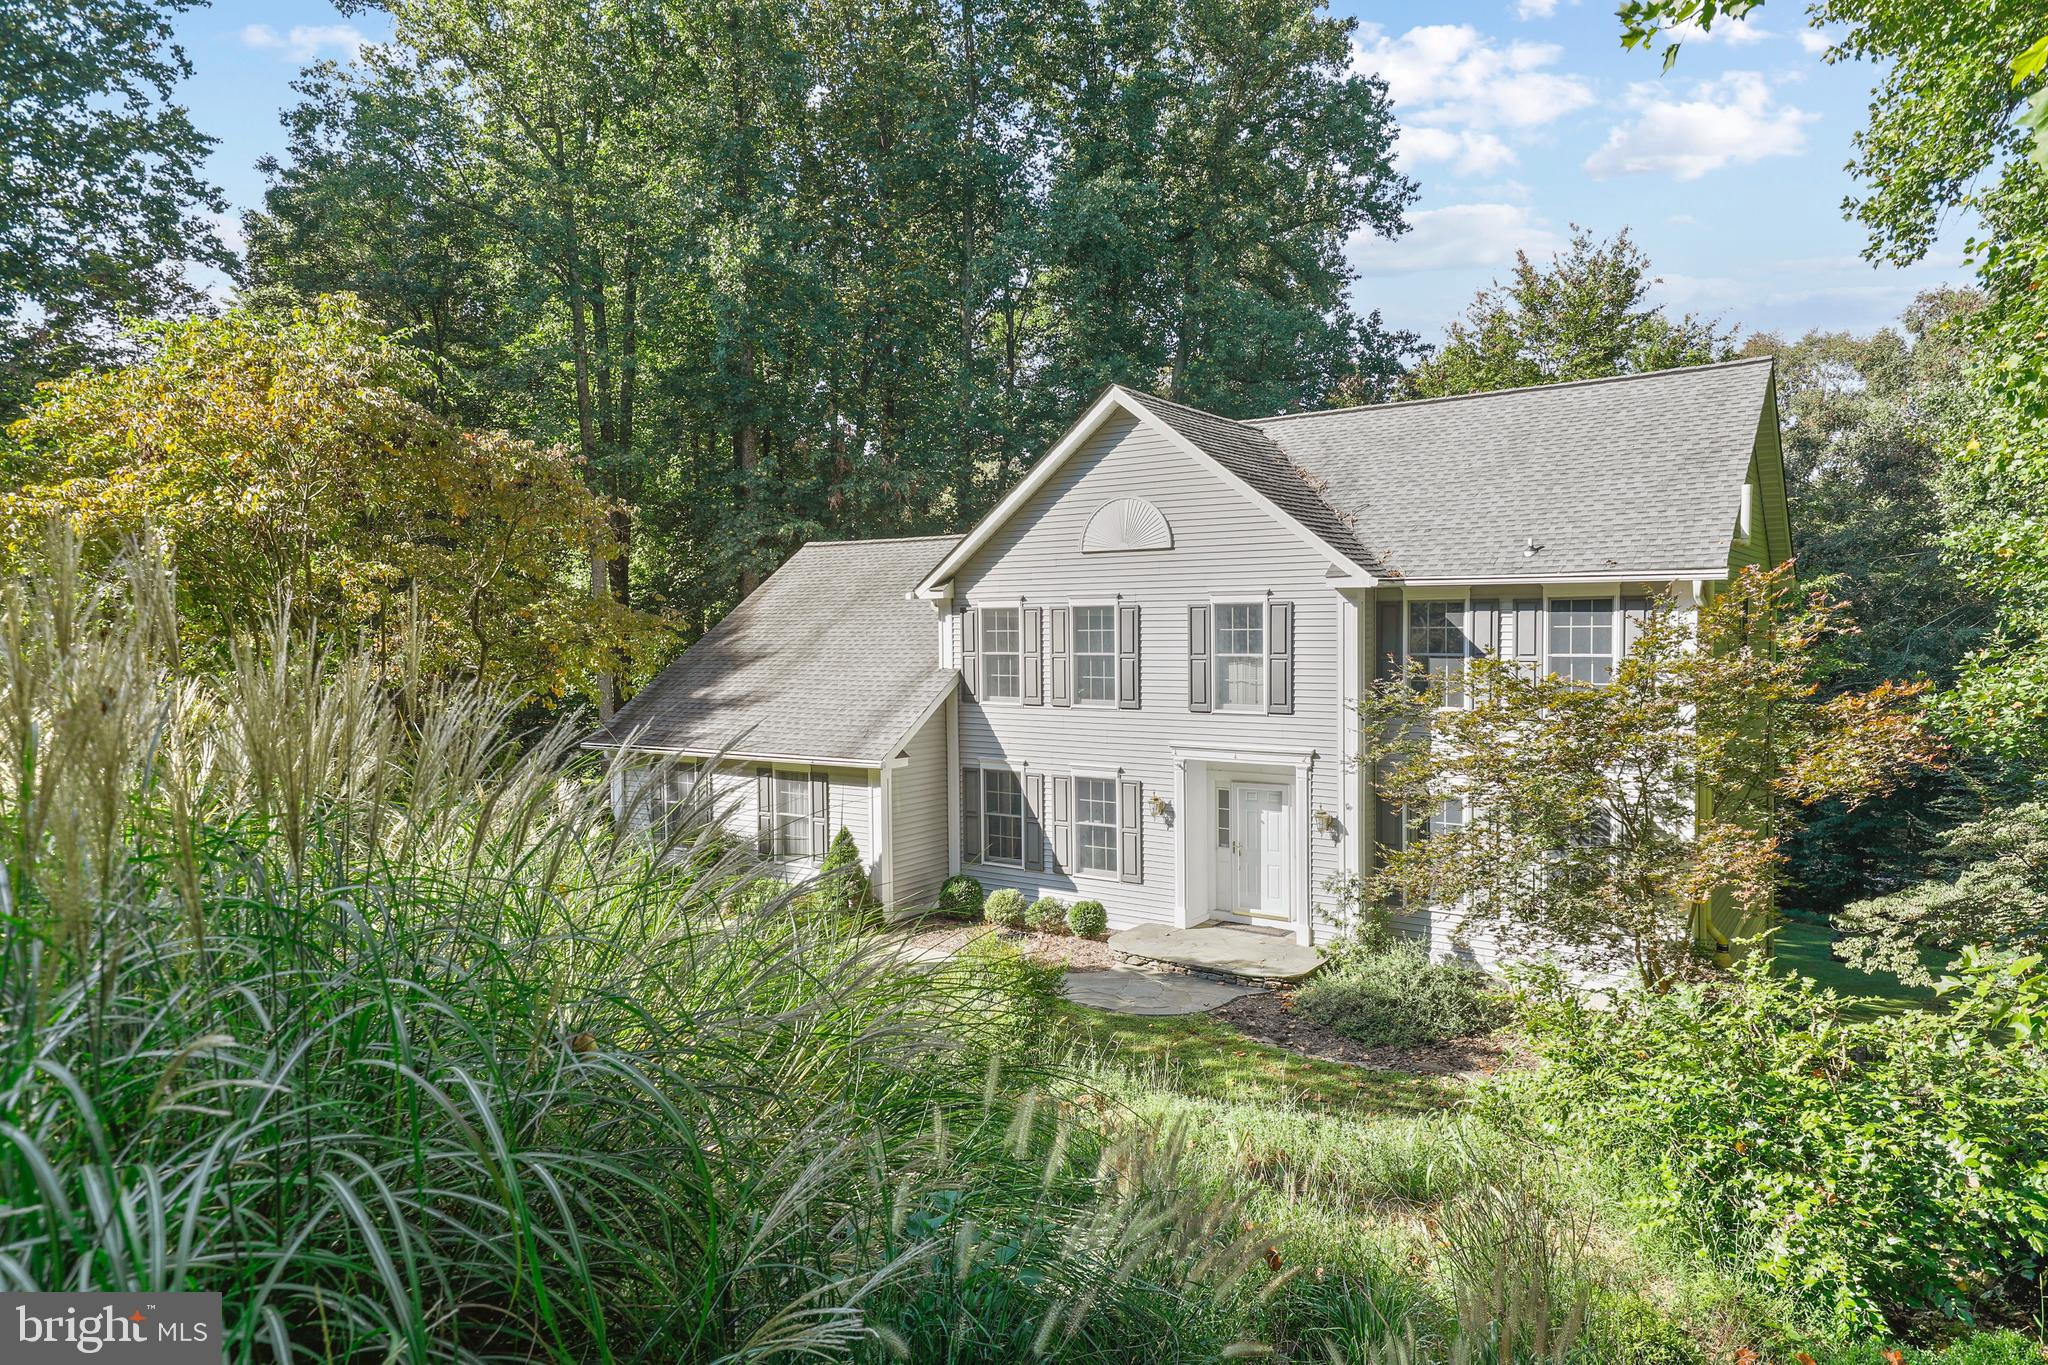 Enchanting Colonial, nestled upon a private 1.43-acre lot complete with captivating views of Patapsc